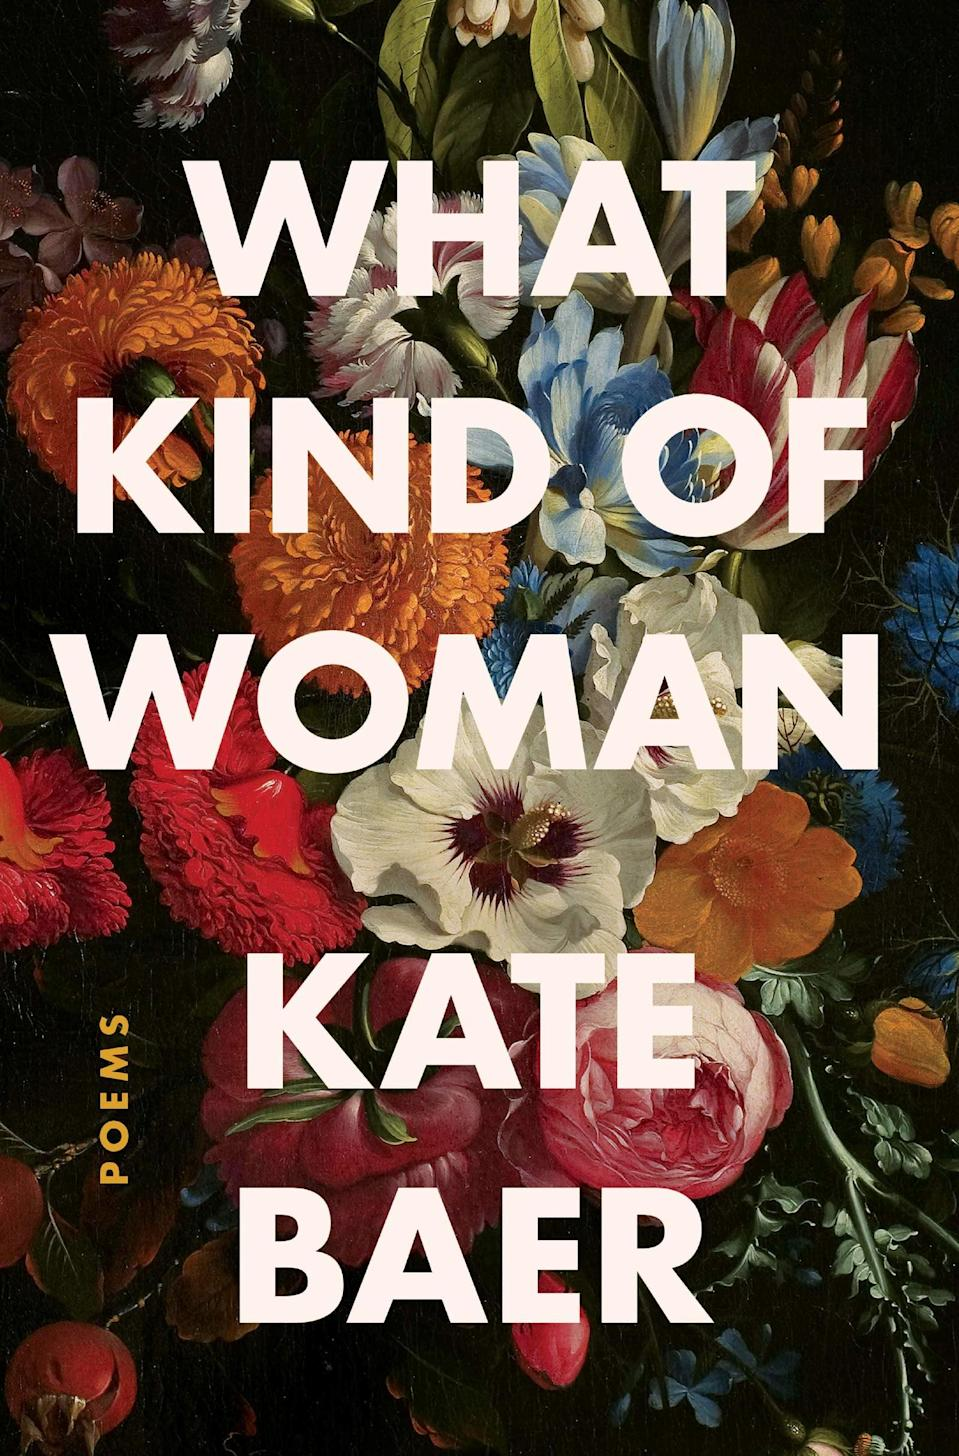 <p>Even if poetry isn't your preferred genre, <span><strong>What Kind of Woman</strong></span> by Kate Baer will win you over. Baer uses poetry to examine what it means to be a woman in today's society, from the transformative experience of becoming a mother to the power of surrounding yourself with female friends. Her poems are powerful meditations on womanhood that you'll want to share with all the women in your life.</p> <p><em>Out Nov. 10</em></p>